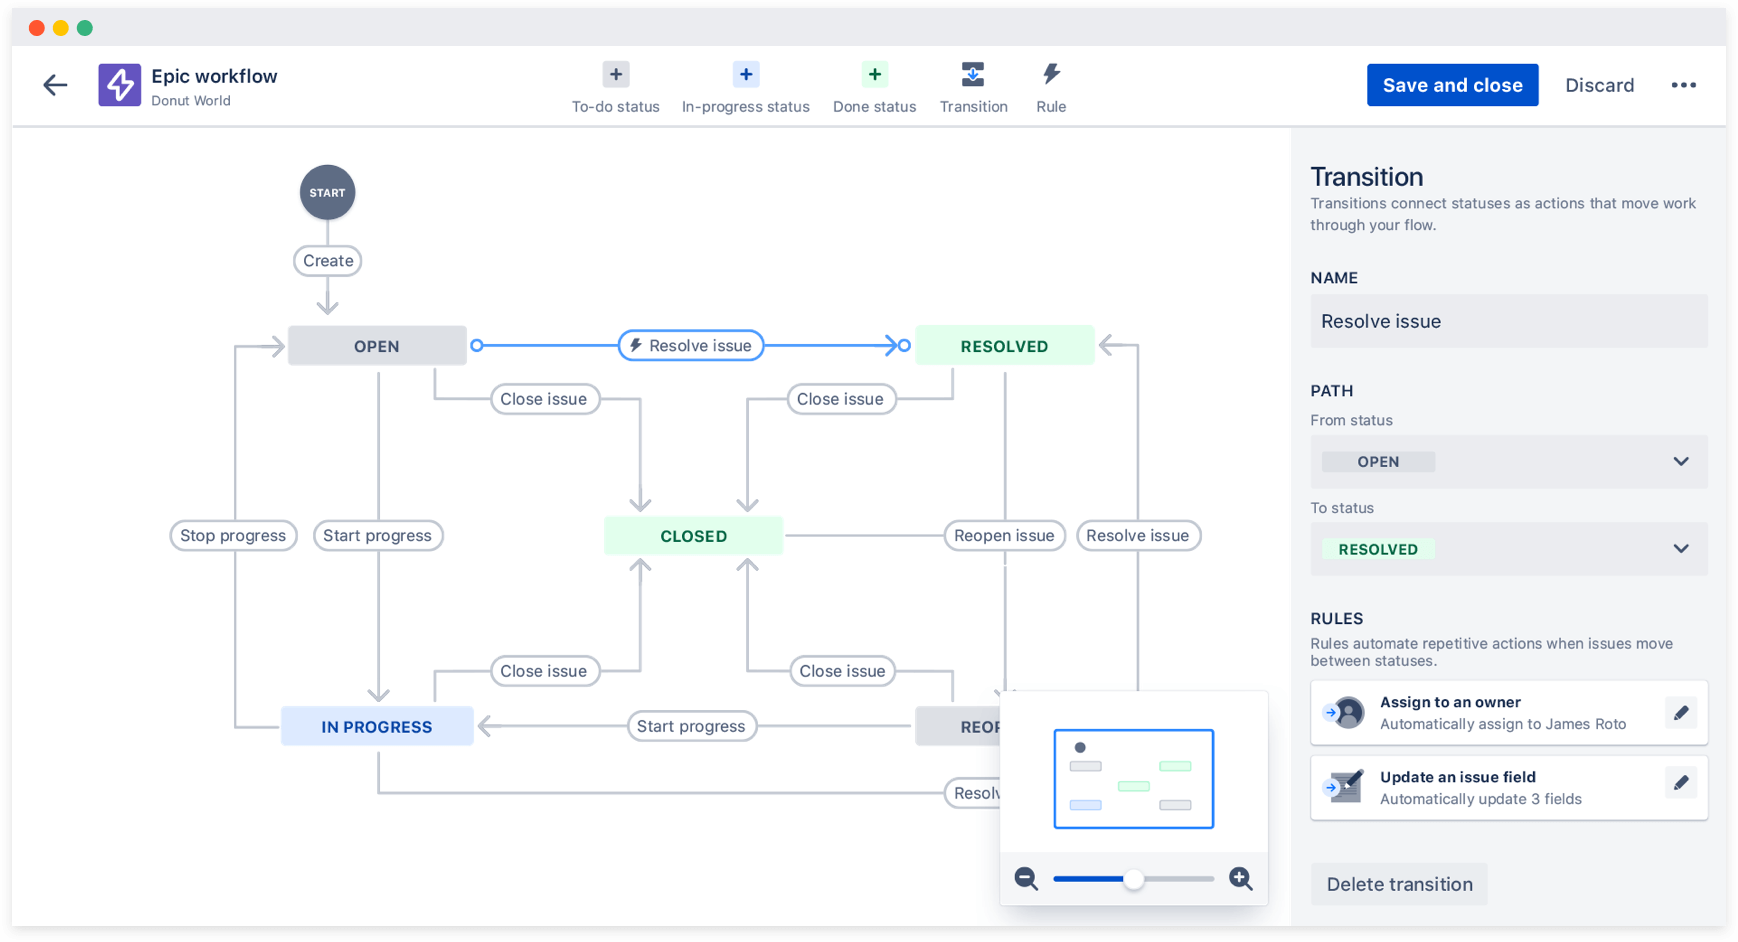 The workflow editor